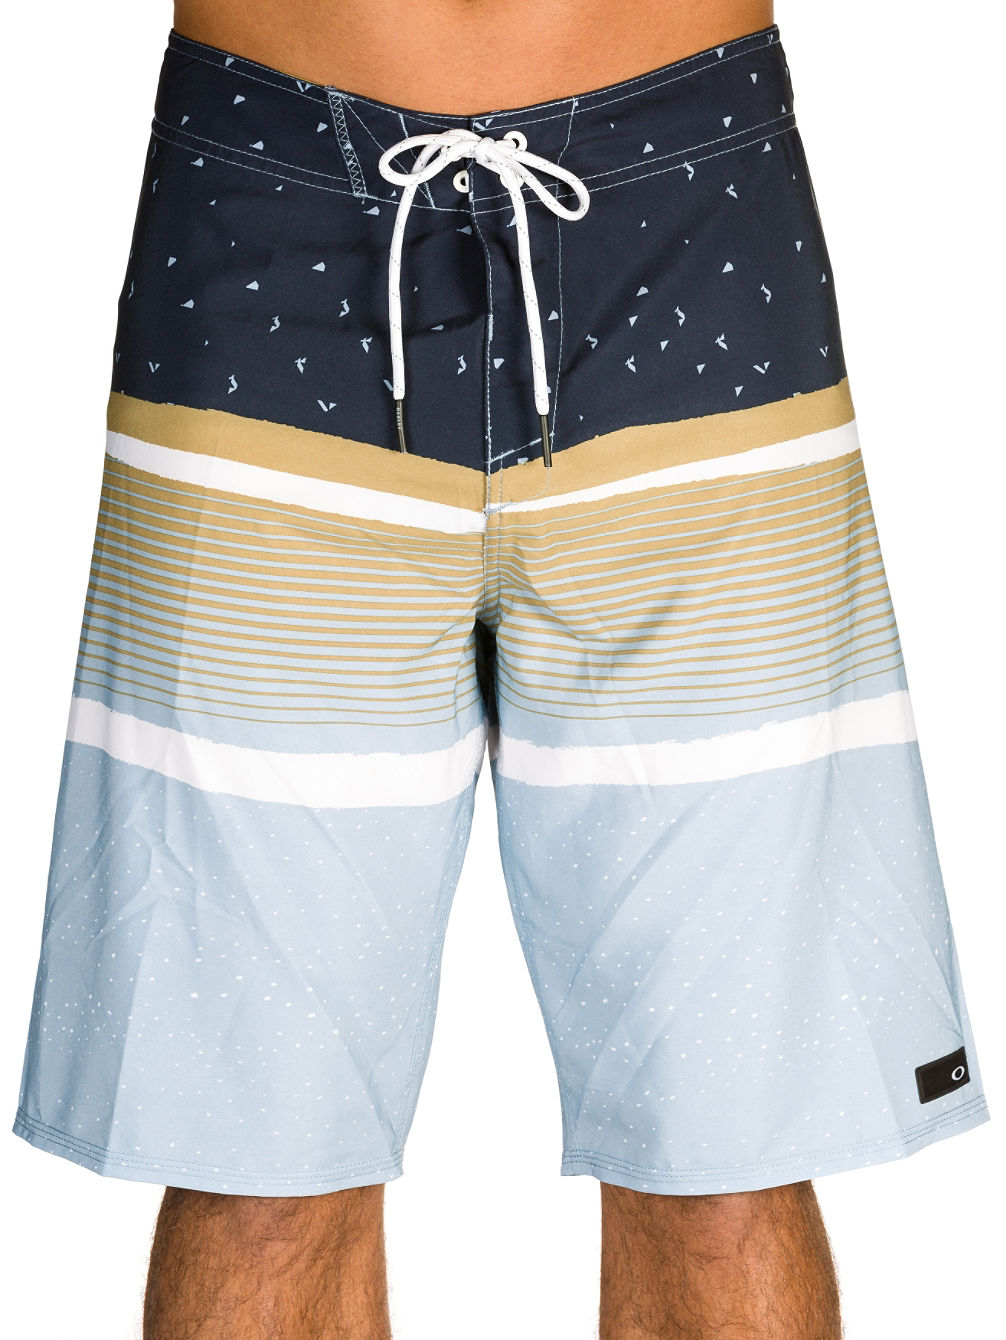 Solitude 20 Boardshorts